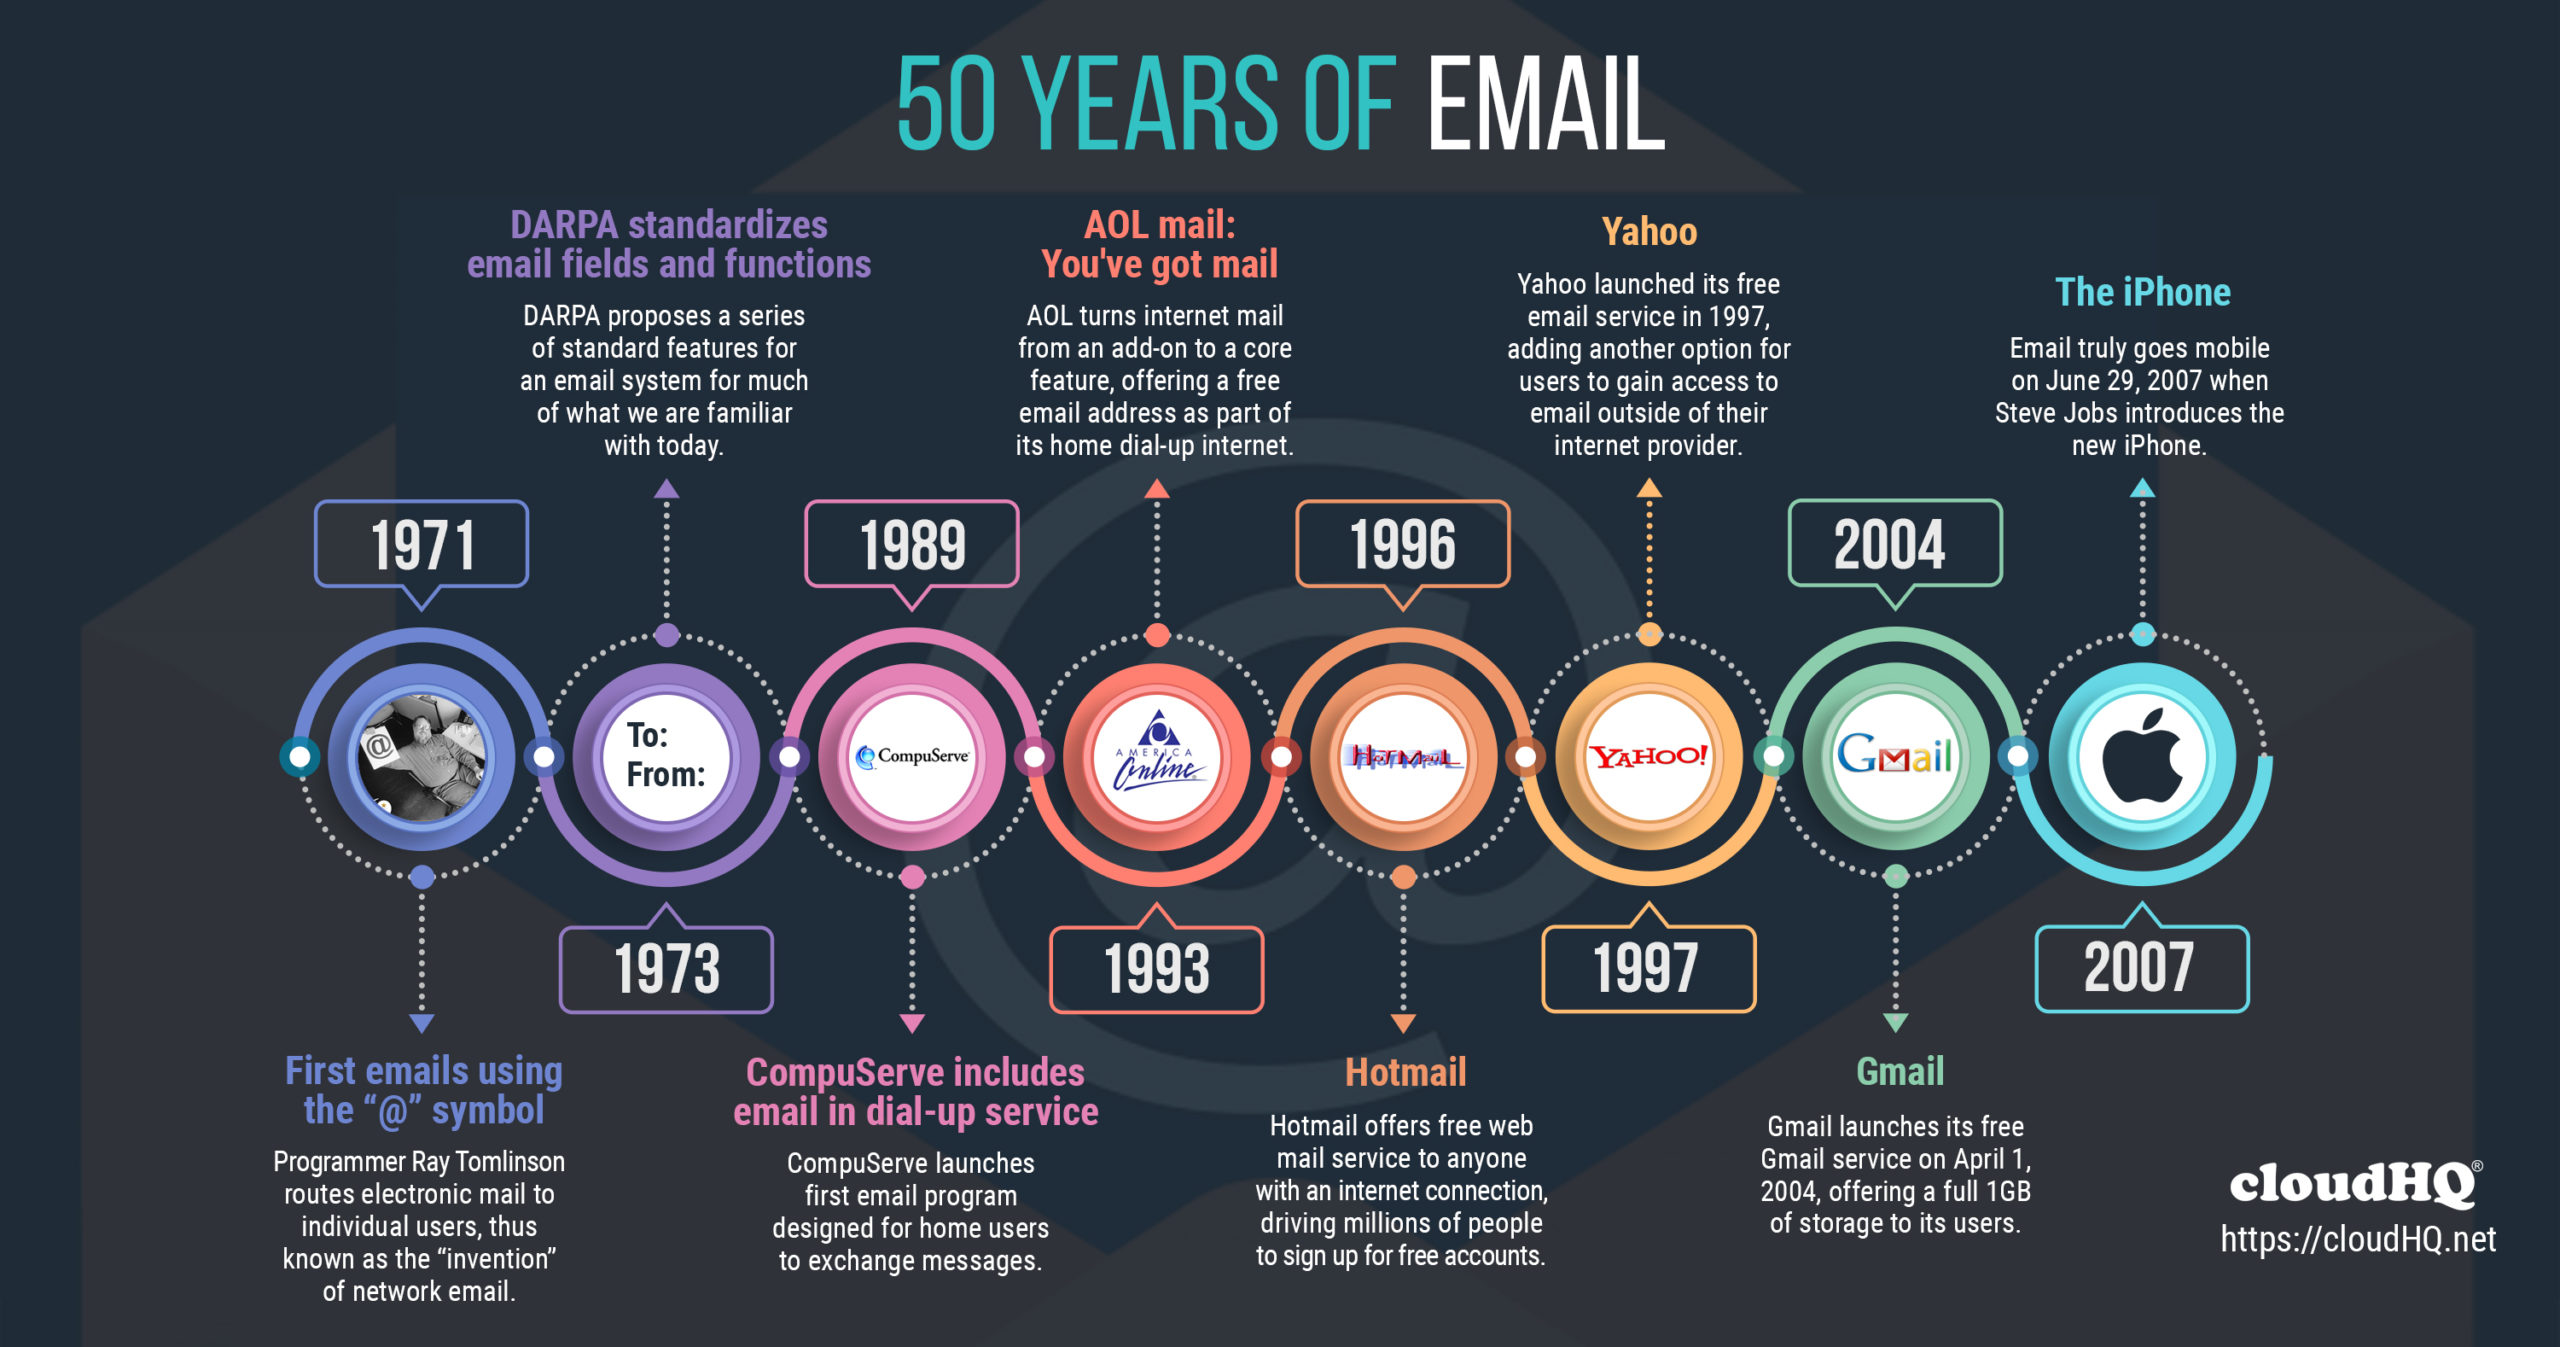 Celebrating 50 Years of Email